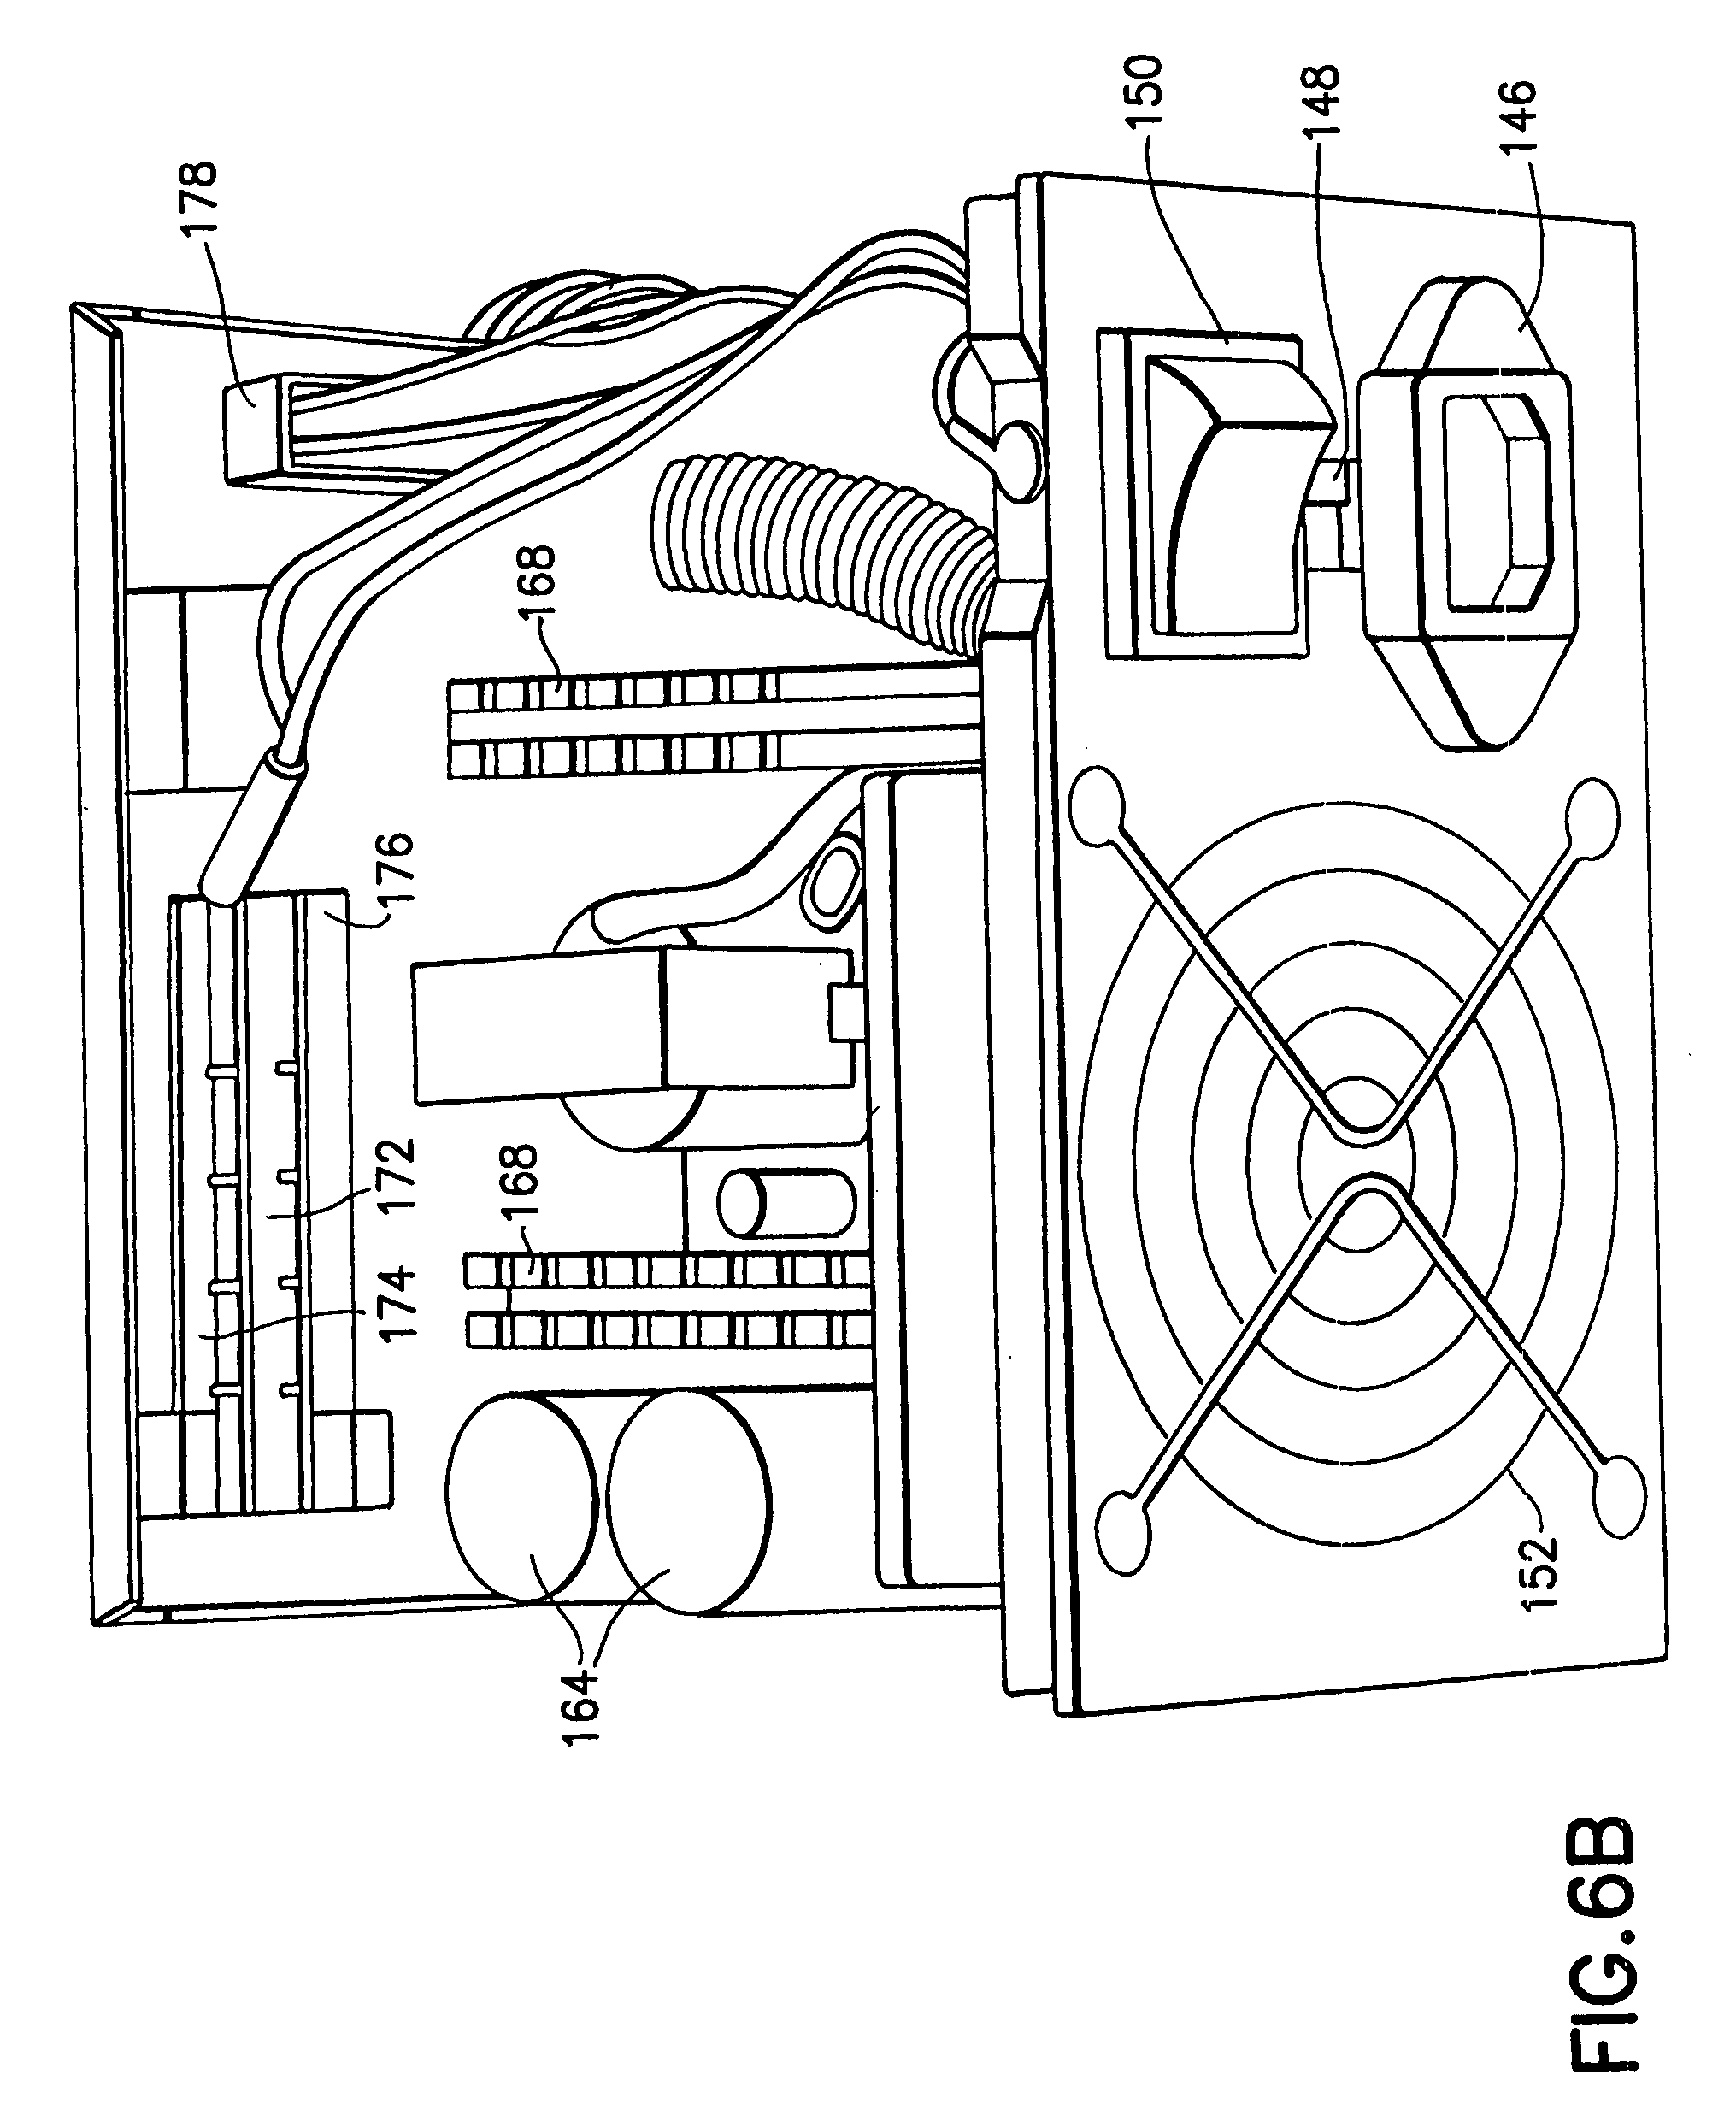 ac current with Us7133293 on File Current Source furthermore Varistor together with Wiring Diagram Of  pressor With in addition Relays in addition Fan Wiring Information.